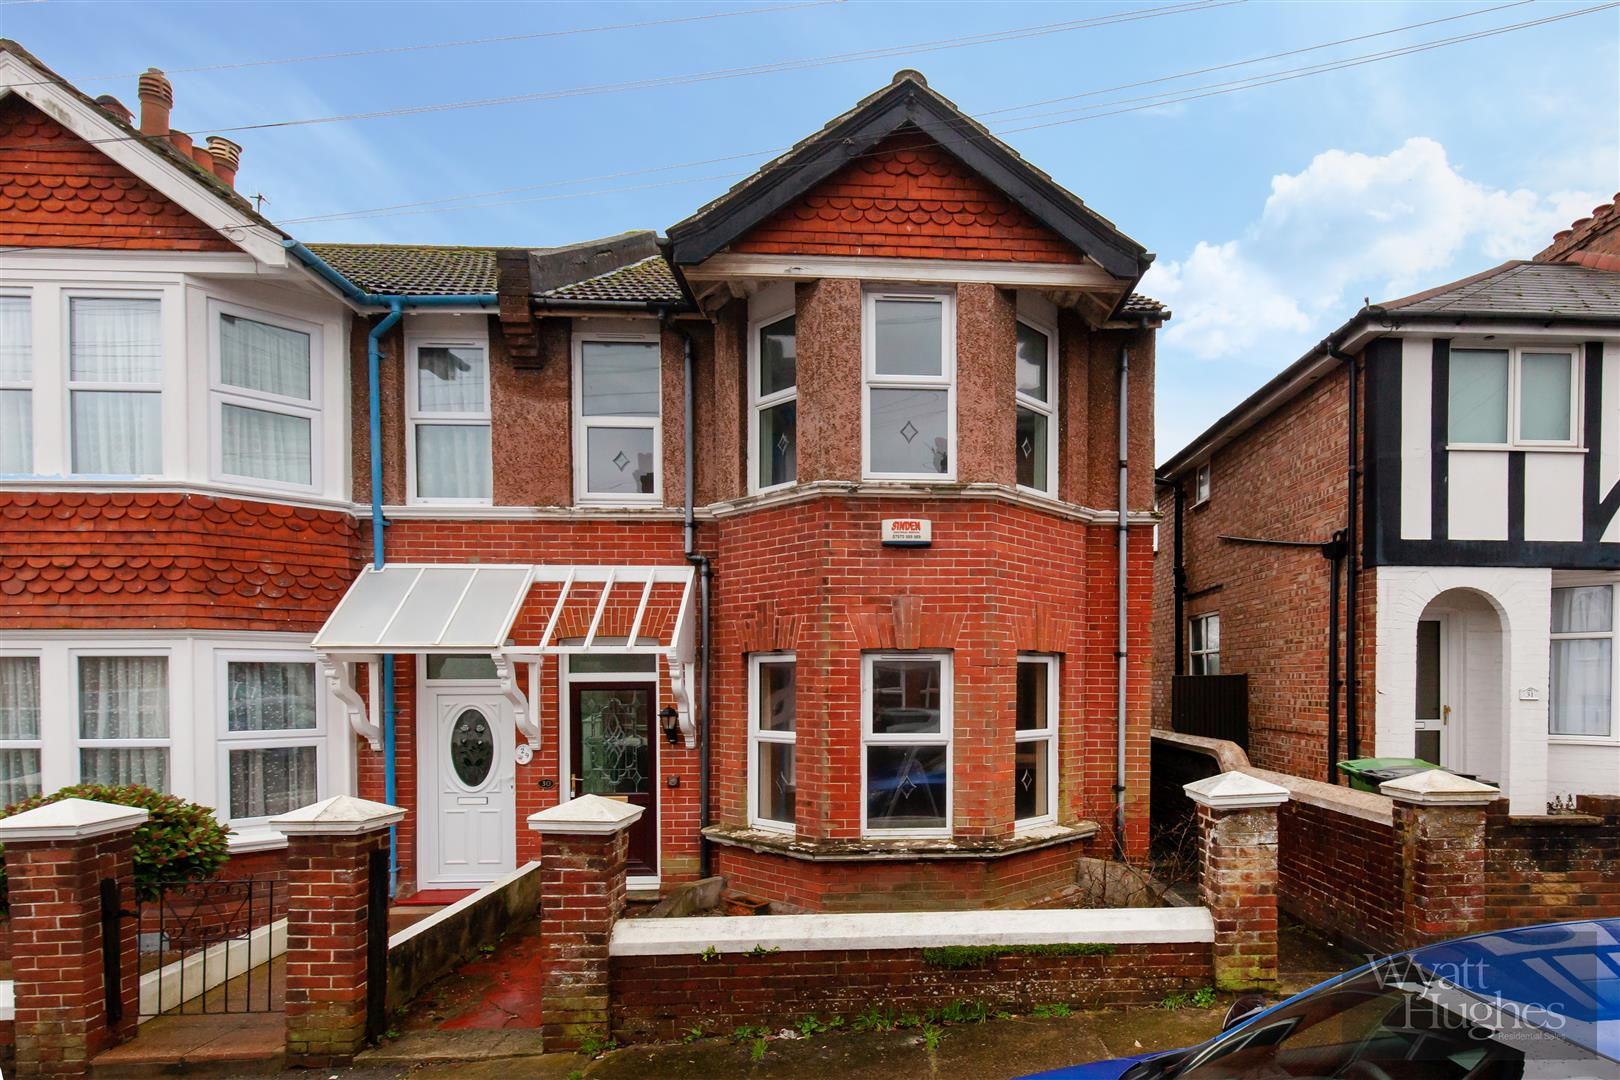 3 bed end of terrace house for sale in Burry Road, St. Leonards-On-Sea, TN37